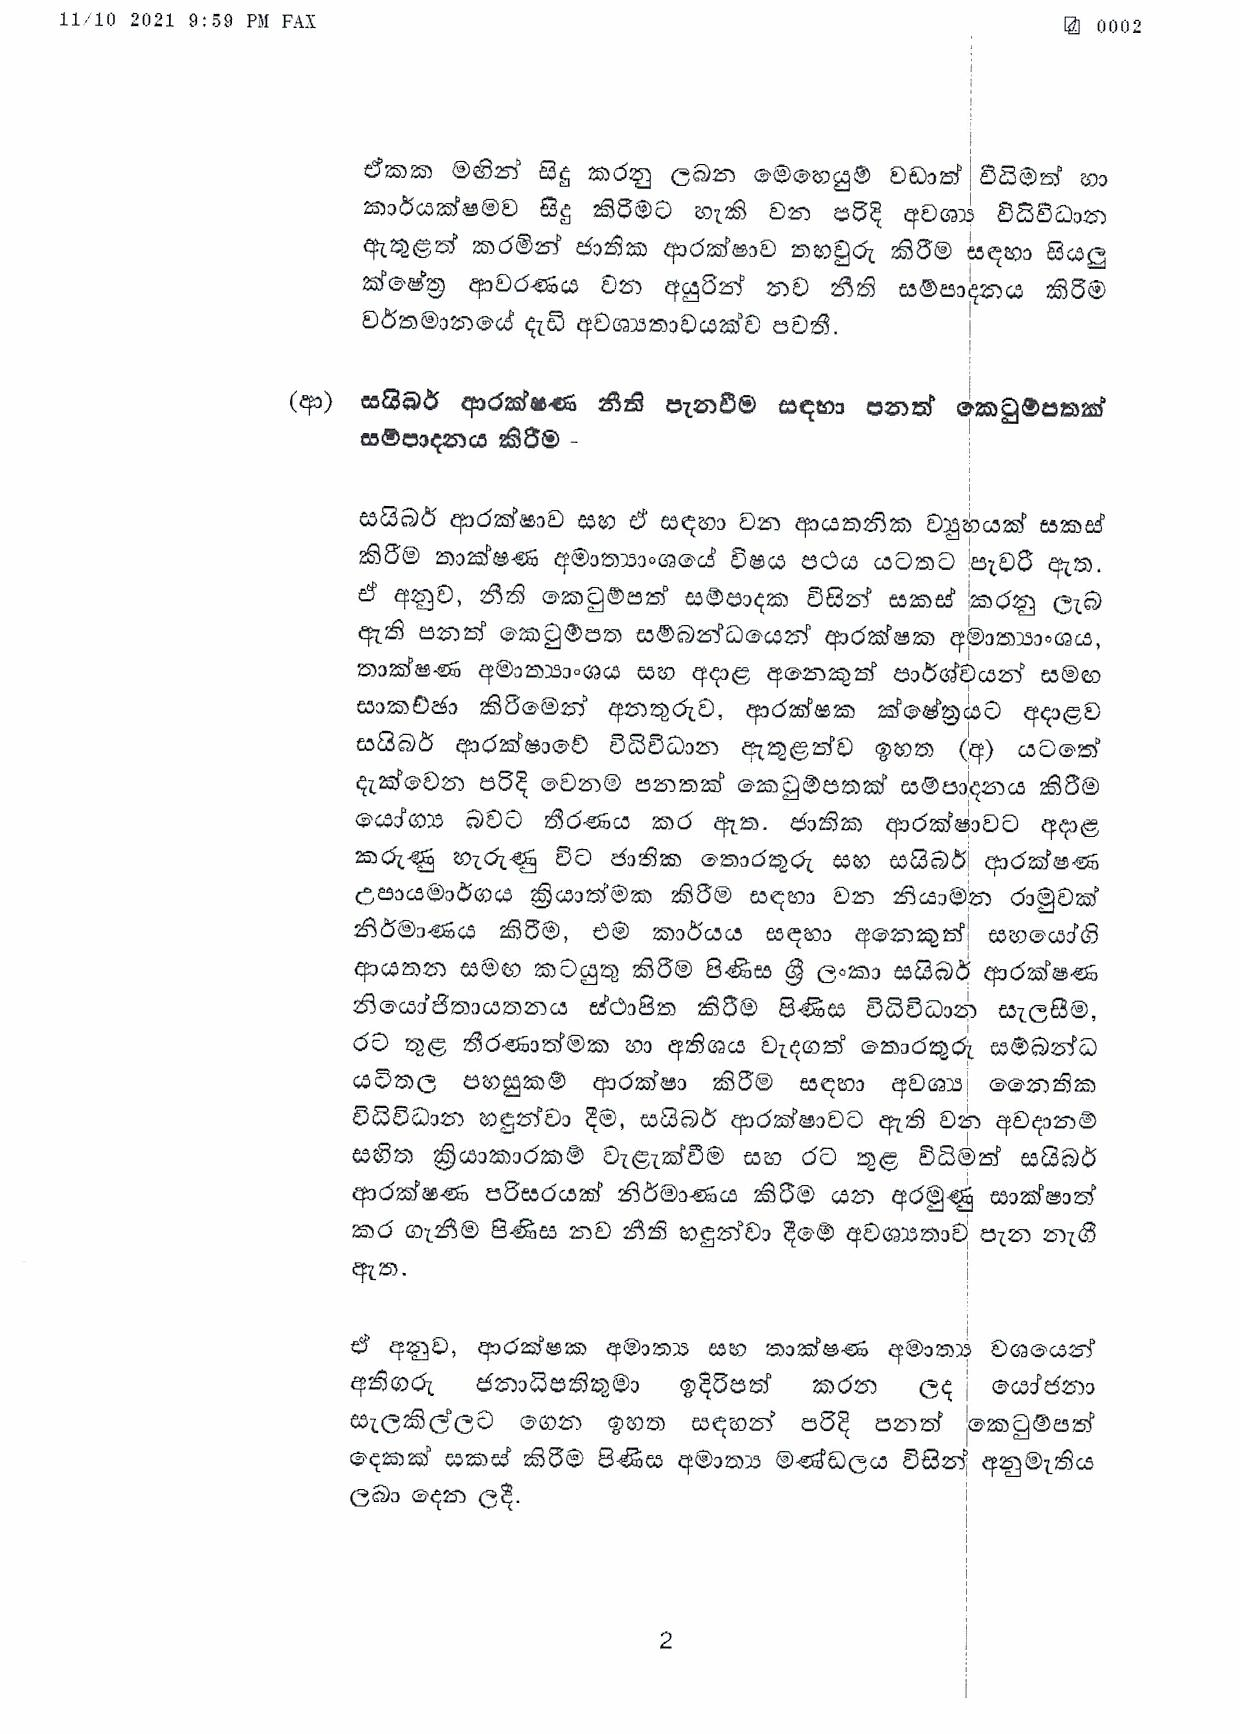 Cabinet Decisions on 11.10.2021 page 002